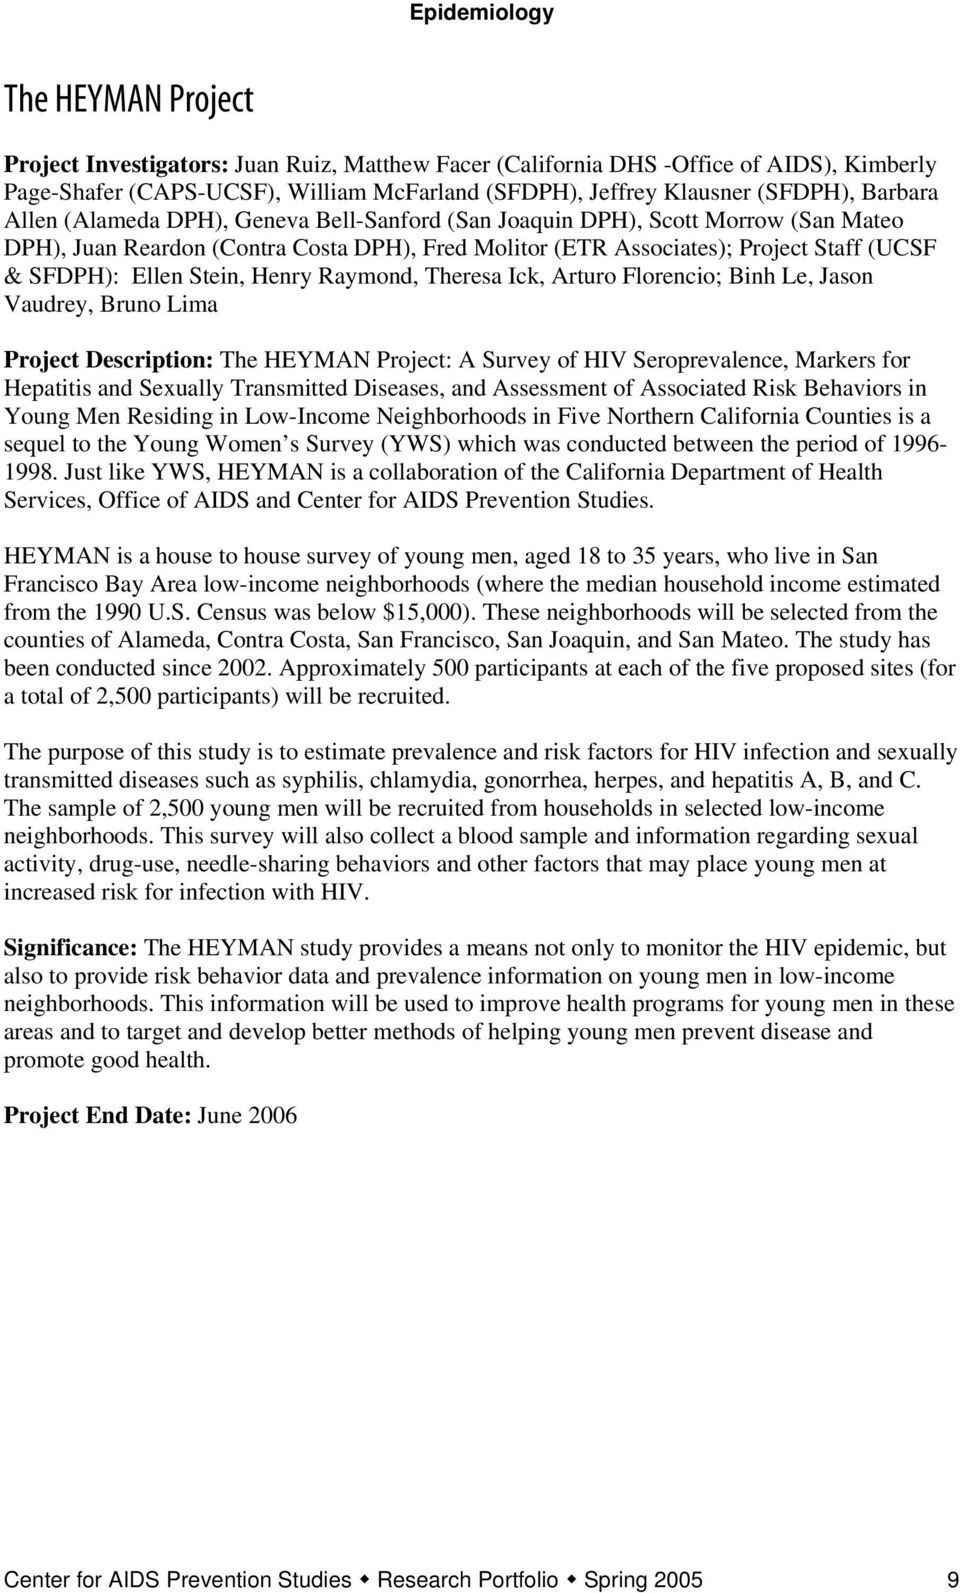 SFDPH): Ellen Stein, Henry Raymond, Theresa Ick, Arturo Florencio; Binh Le, Jason Vaudrey, Bruno Lima Project Description: The HEYMAN Project: A Survey of HIV Seroprevalence, Markers for Hepatitis